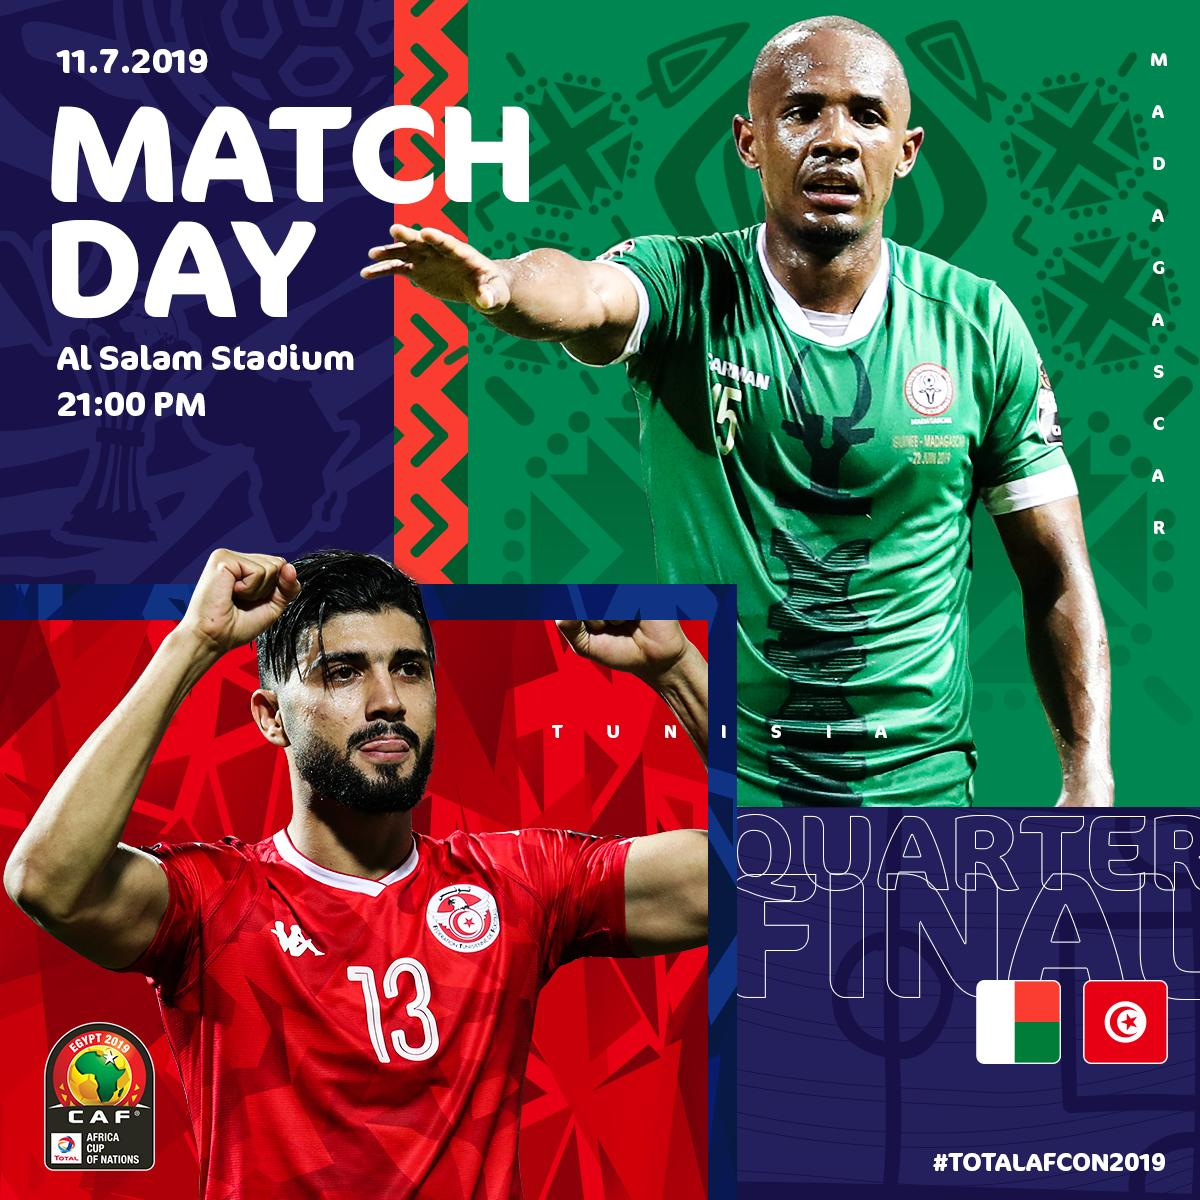 #ALEFABAREA's first ever quarter final   #CarthageEagles 10th ever, yet they've failed to qualify from it in their last  attempts   Who'll create history tonight?  #MADTUN #TotalAFCON2019<br>http://pic.twitter.com/sKZtJzB7rU